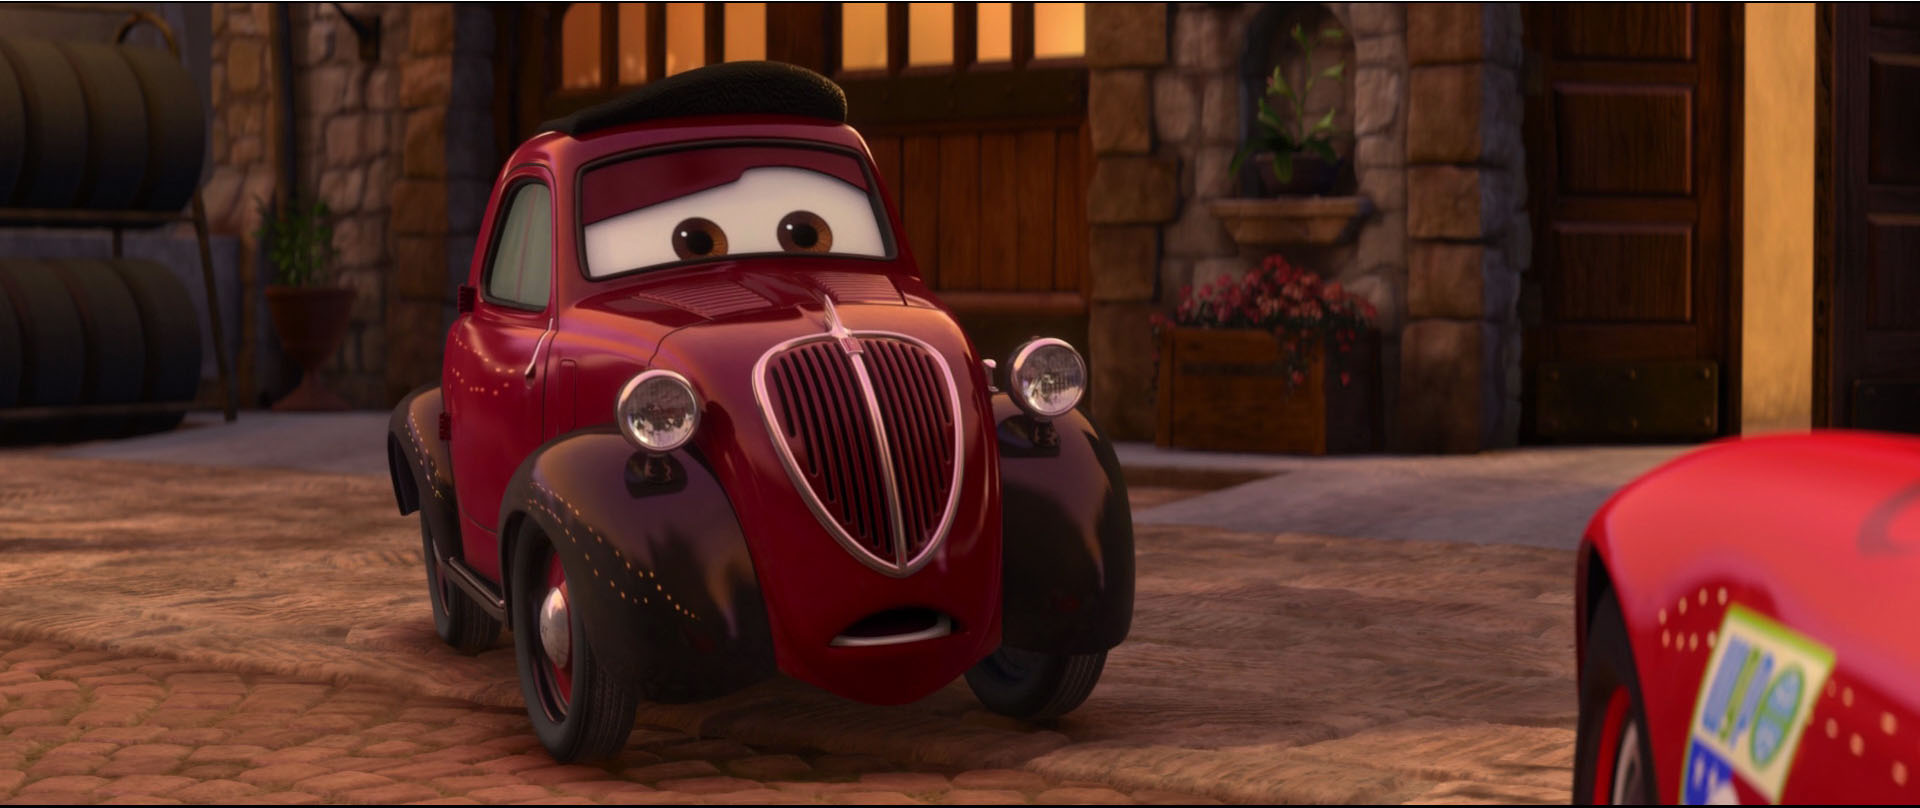 oncle-topolino-personnage-cars-2-02